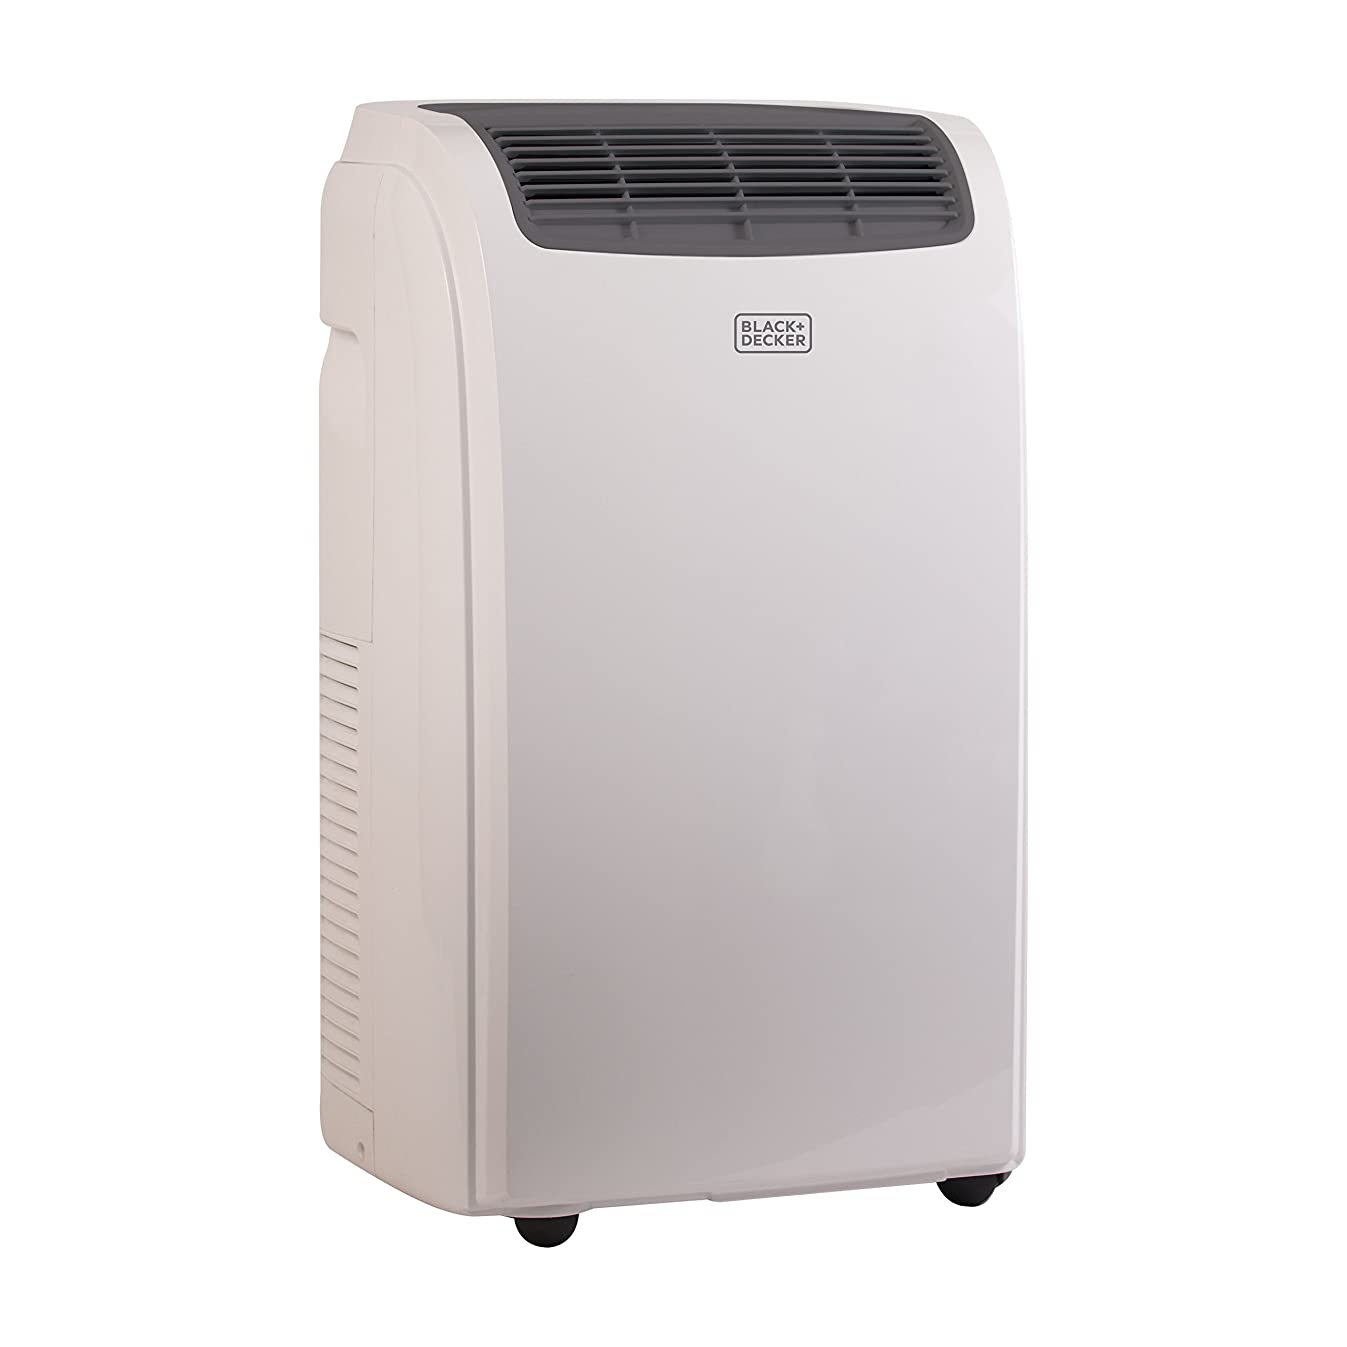 BLACK + DECKER 10000 BTU Portable Air Conditioner Unit, Remote, LED Display, Window Vent Kit, 4 Caster Wheels, White